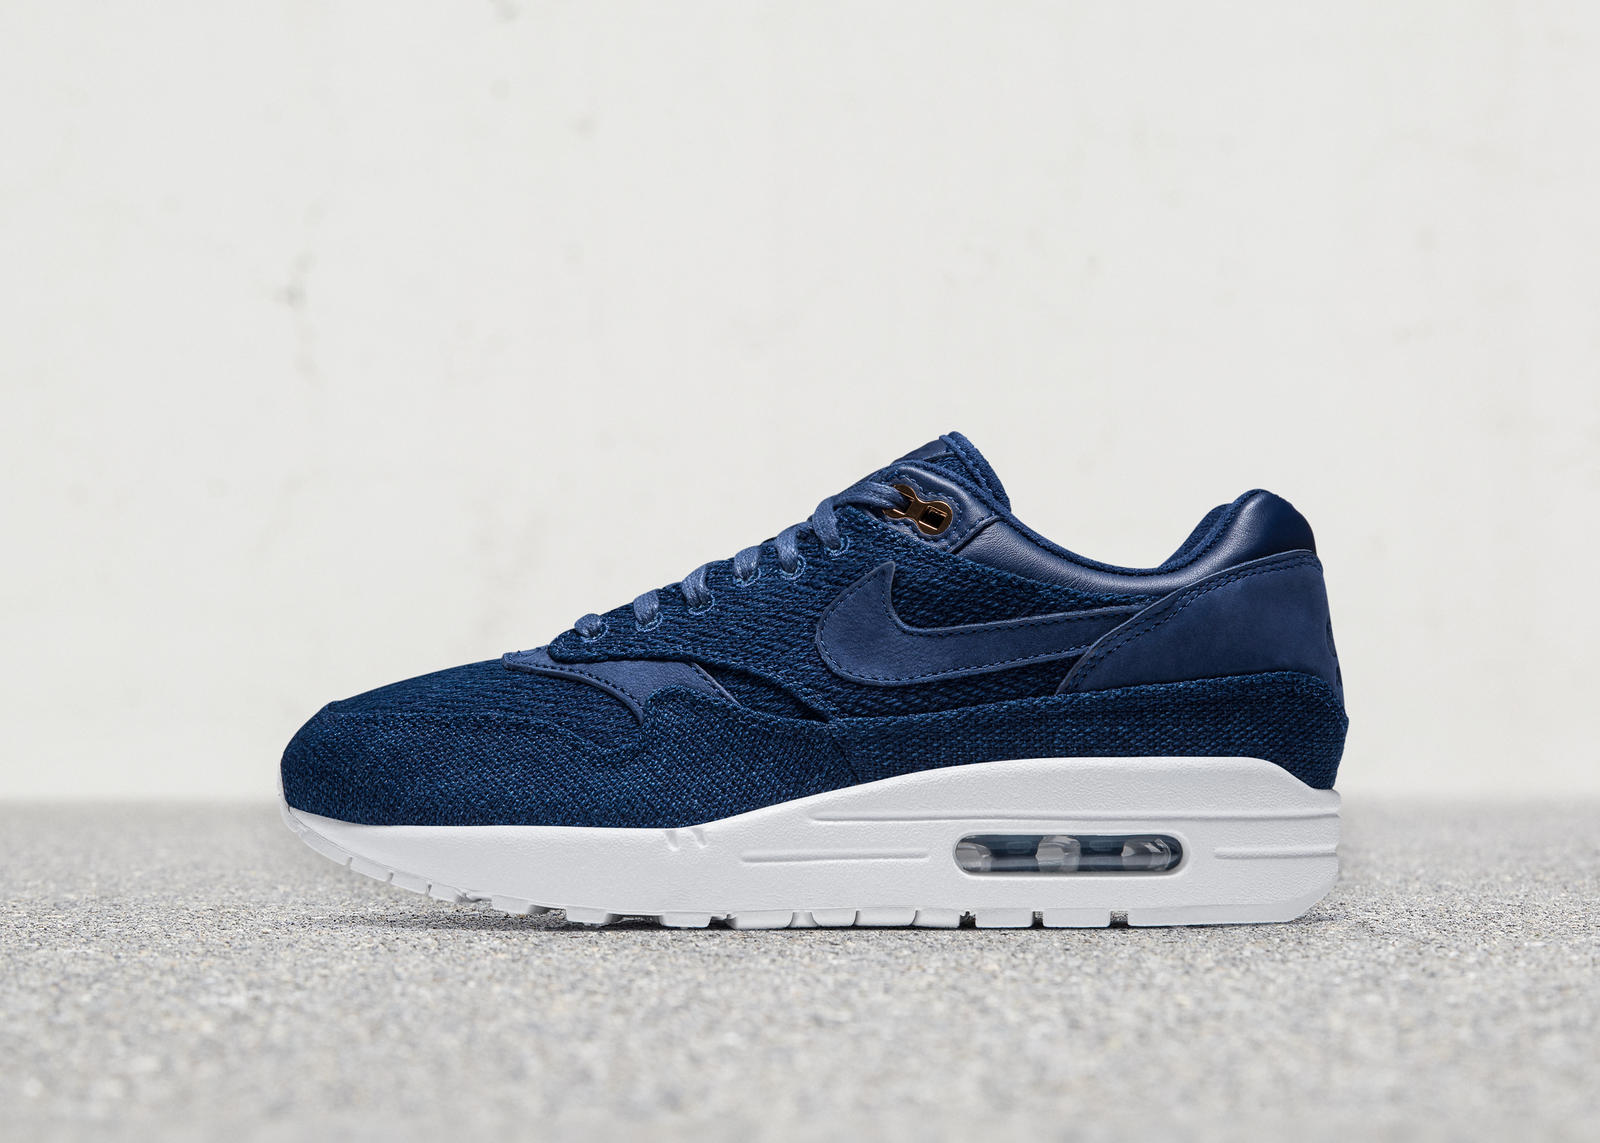 Nike Air Max 1 Lux X Entreprise Tissu Londres Epping